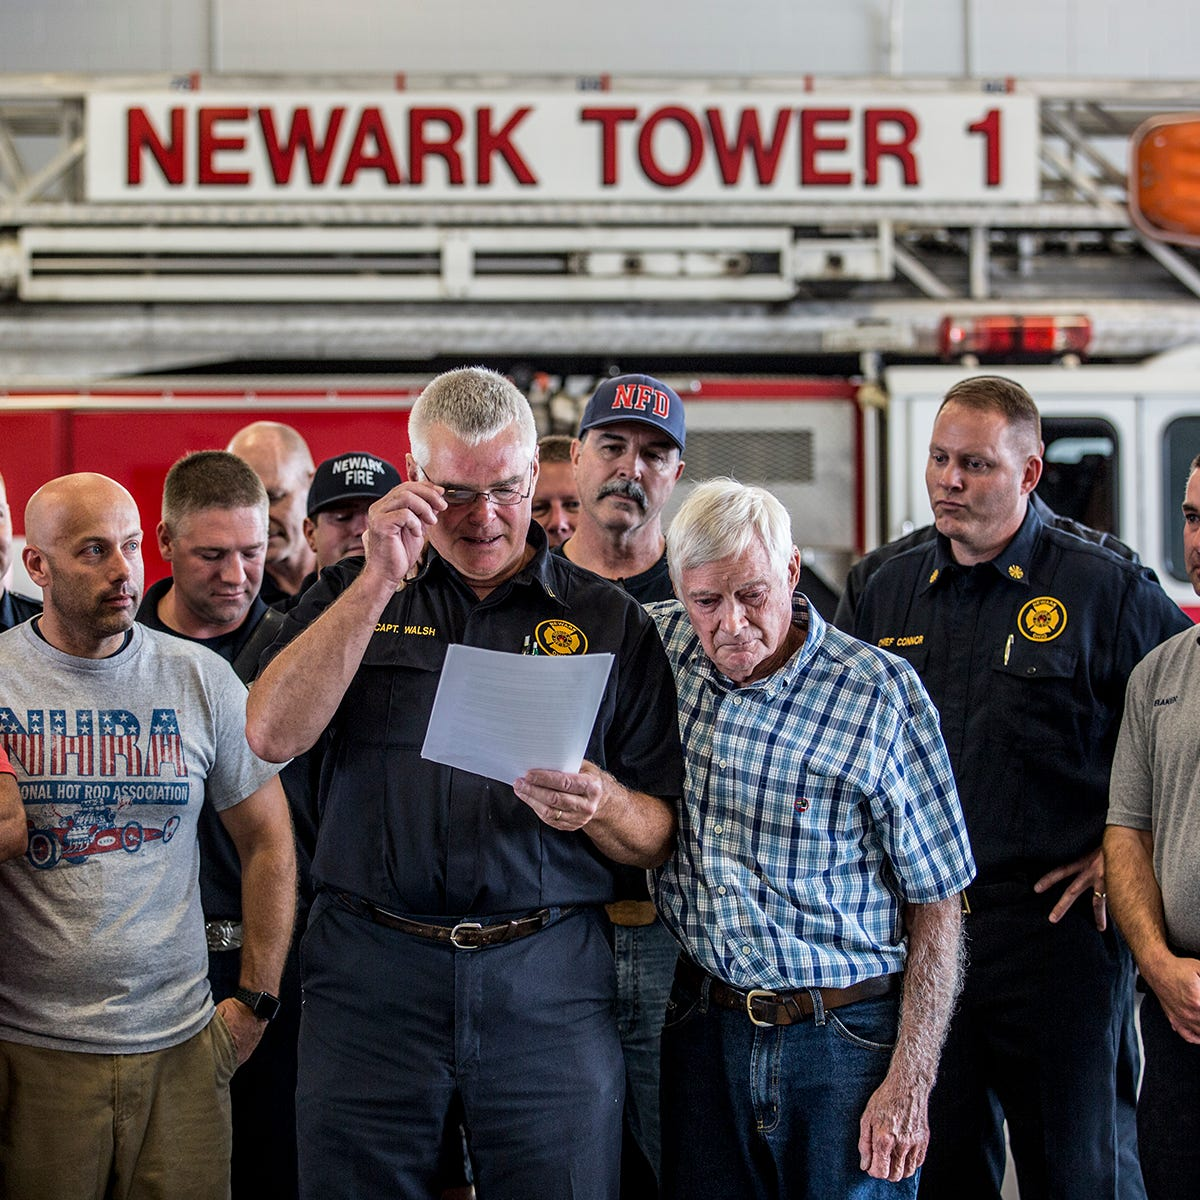 41-year veteran of Newark Fire Department retires